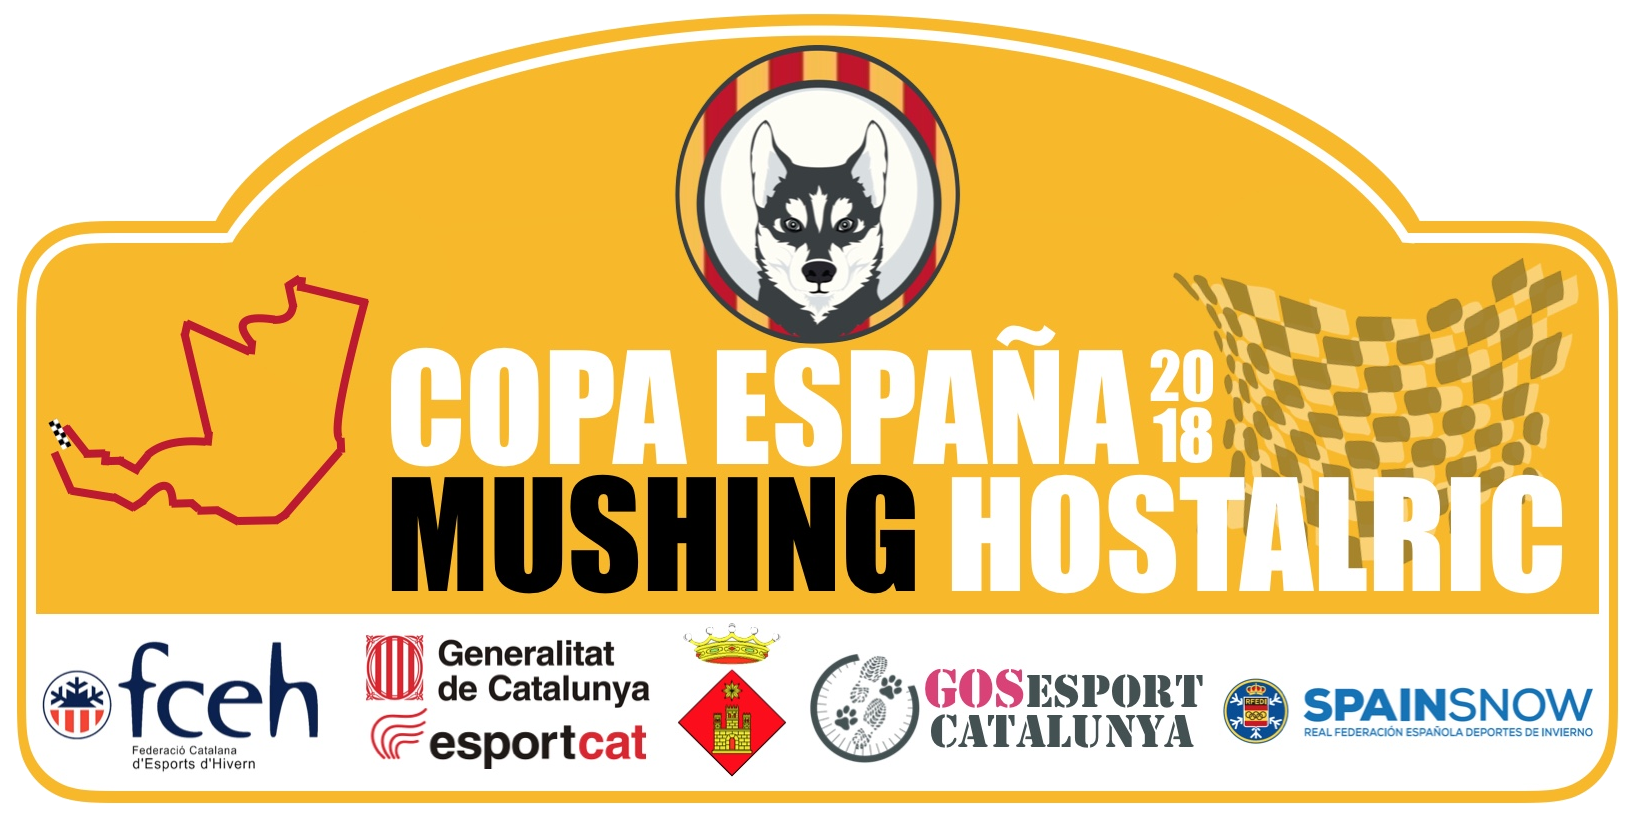 Copa España Mushing Hostalric 2018